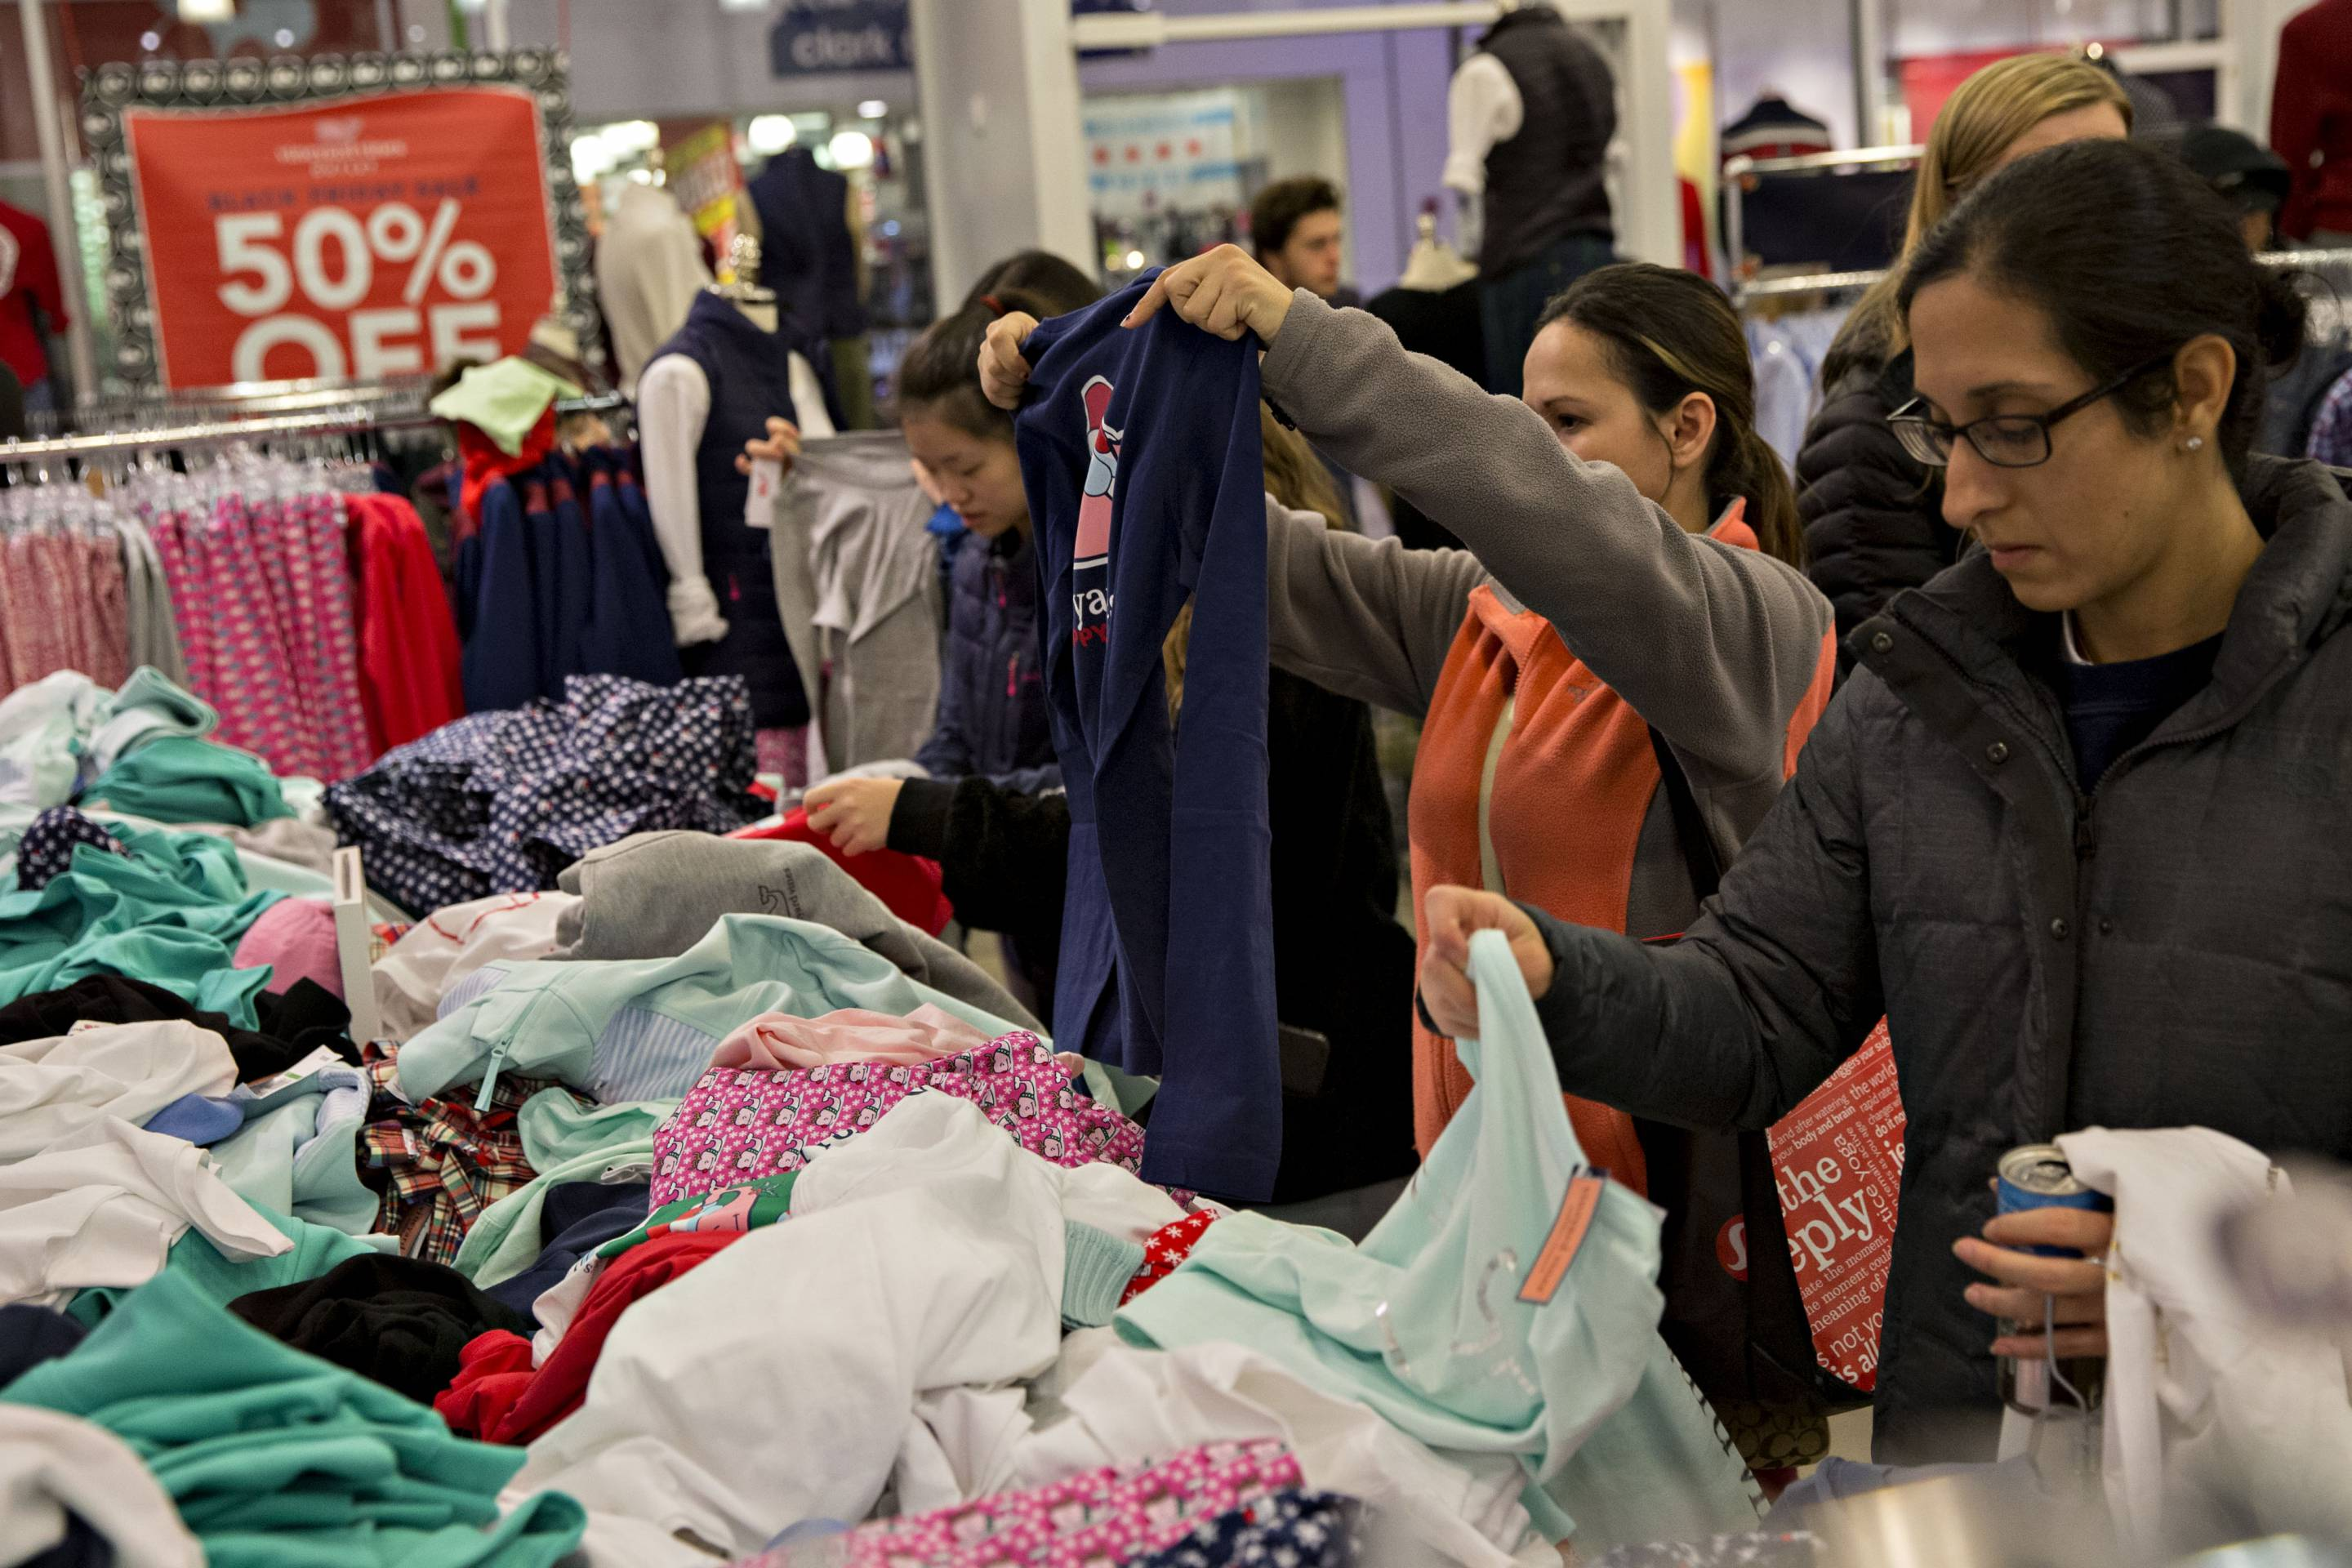 Shoppers look at clothes in a Vineyard Vines store in Chicago, Illinois, U.S., on Thursday, Nov. 23, 2017.